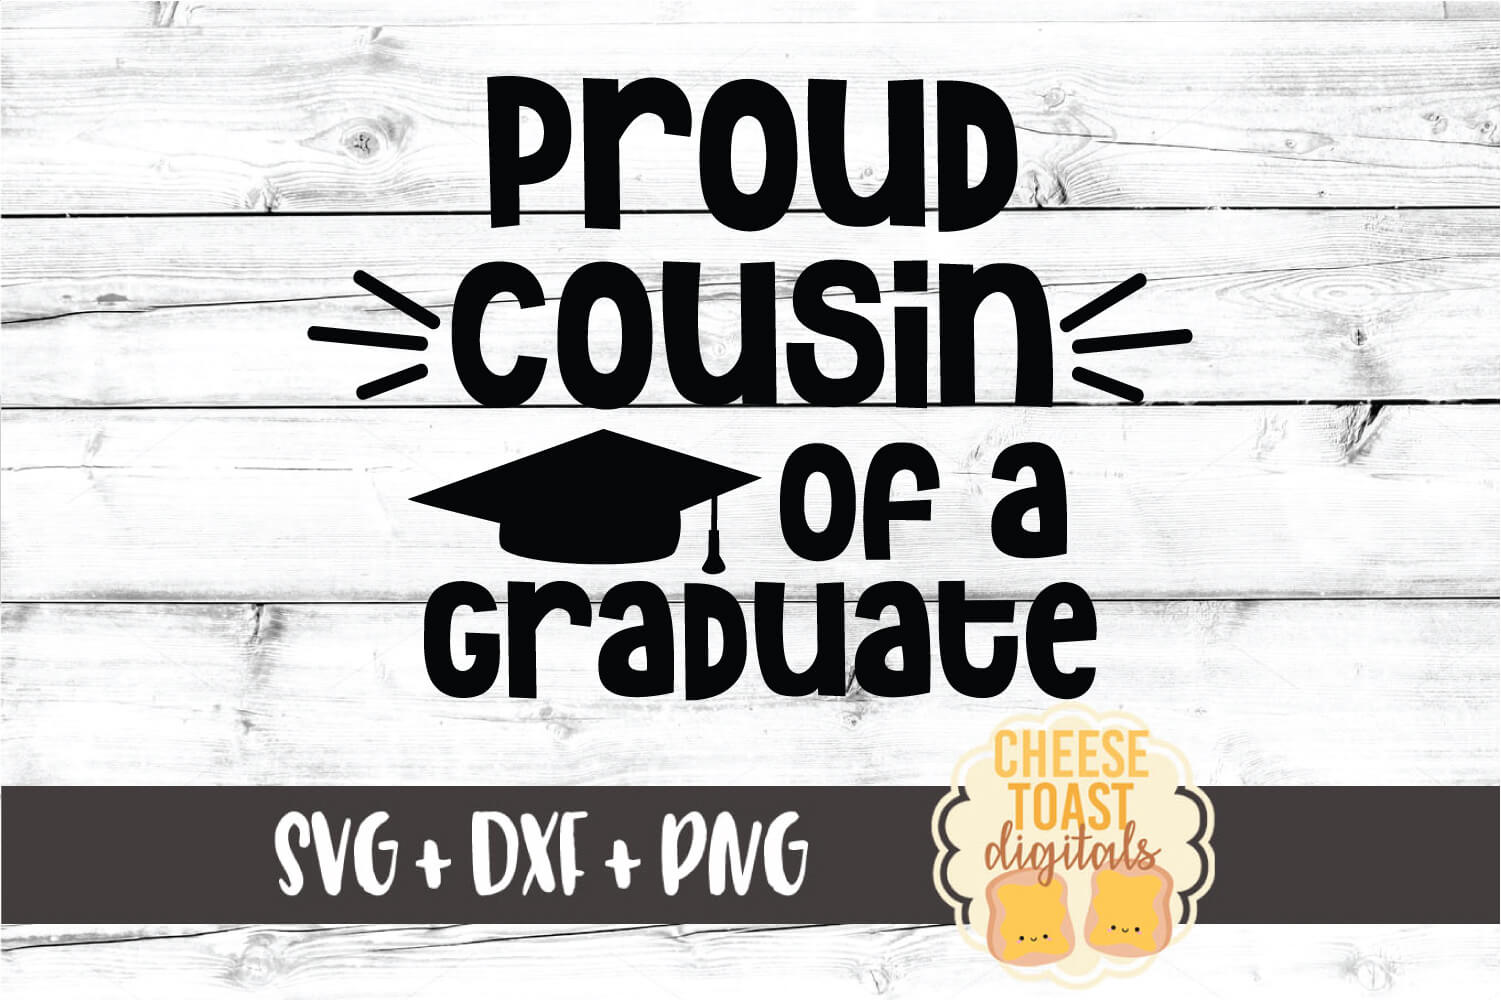 Download Free Proud Cousin Of A Graduate Graphic By Cheesetoastdigitals for Cricut Explore, Silhouette and other cutting machines.